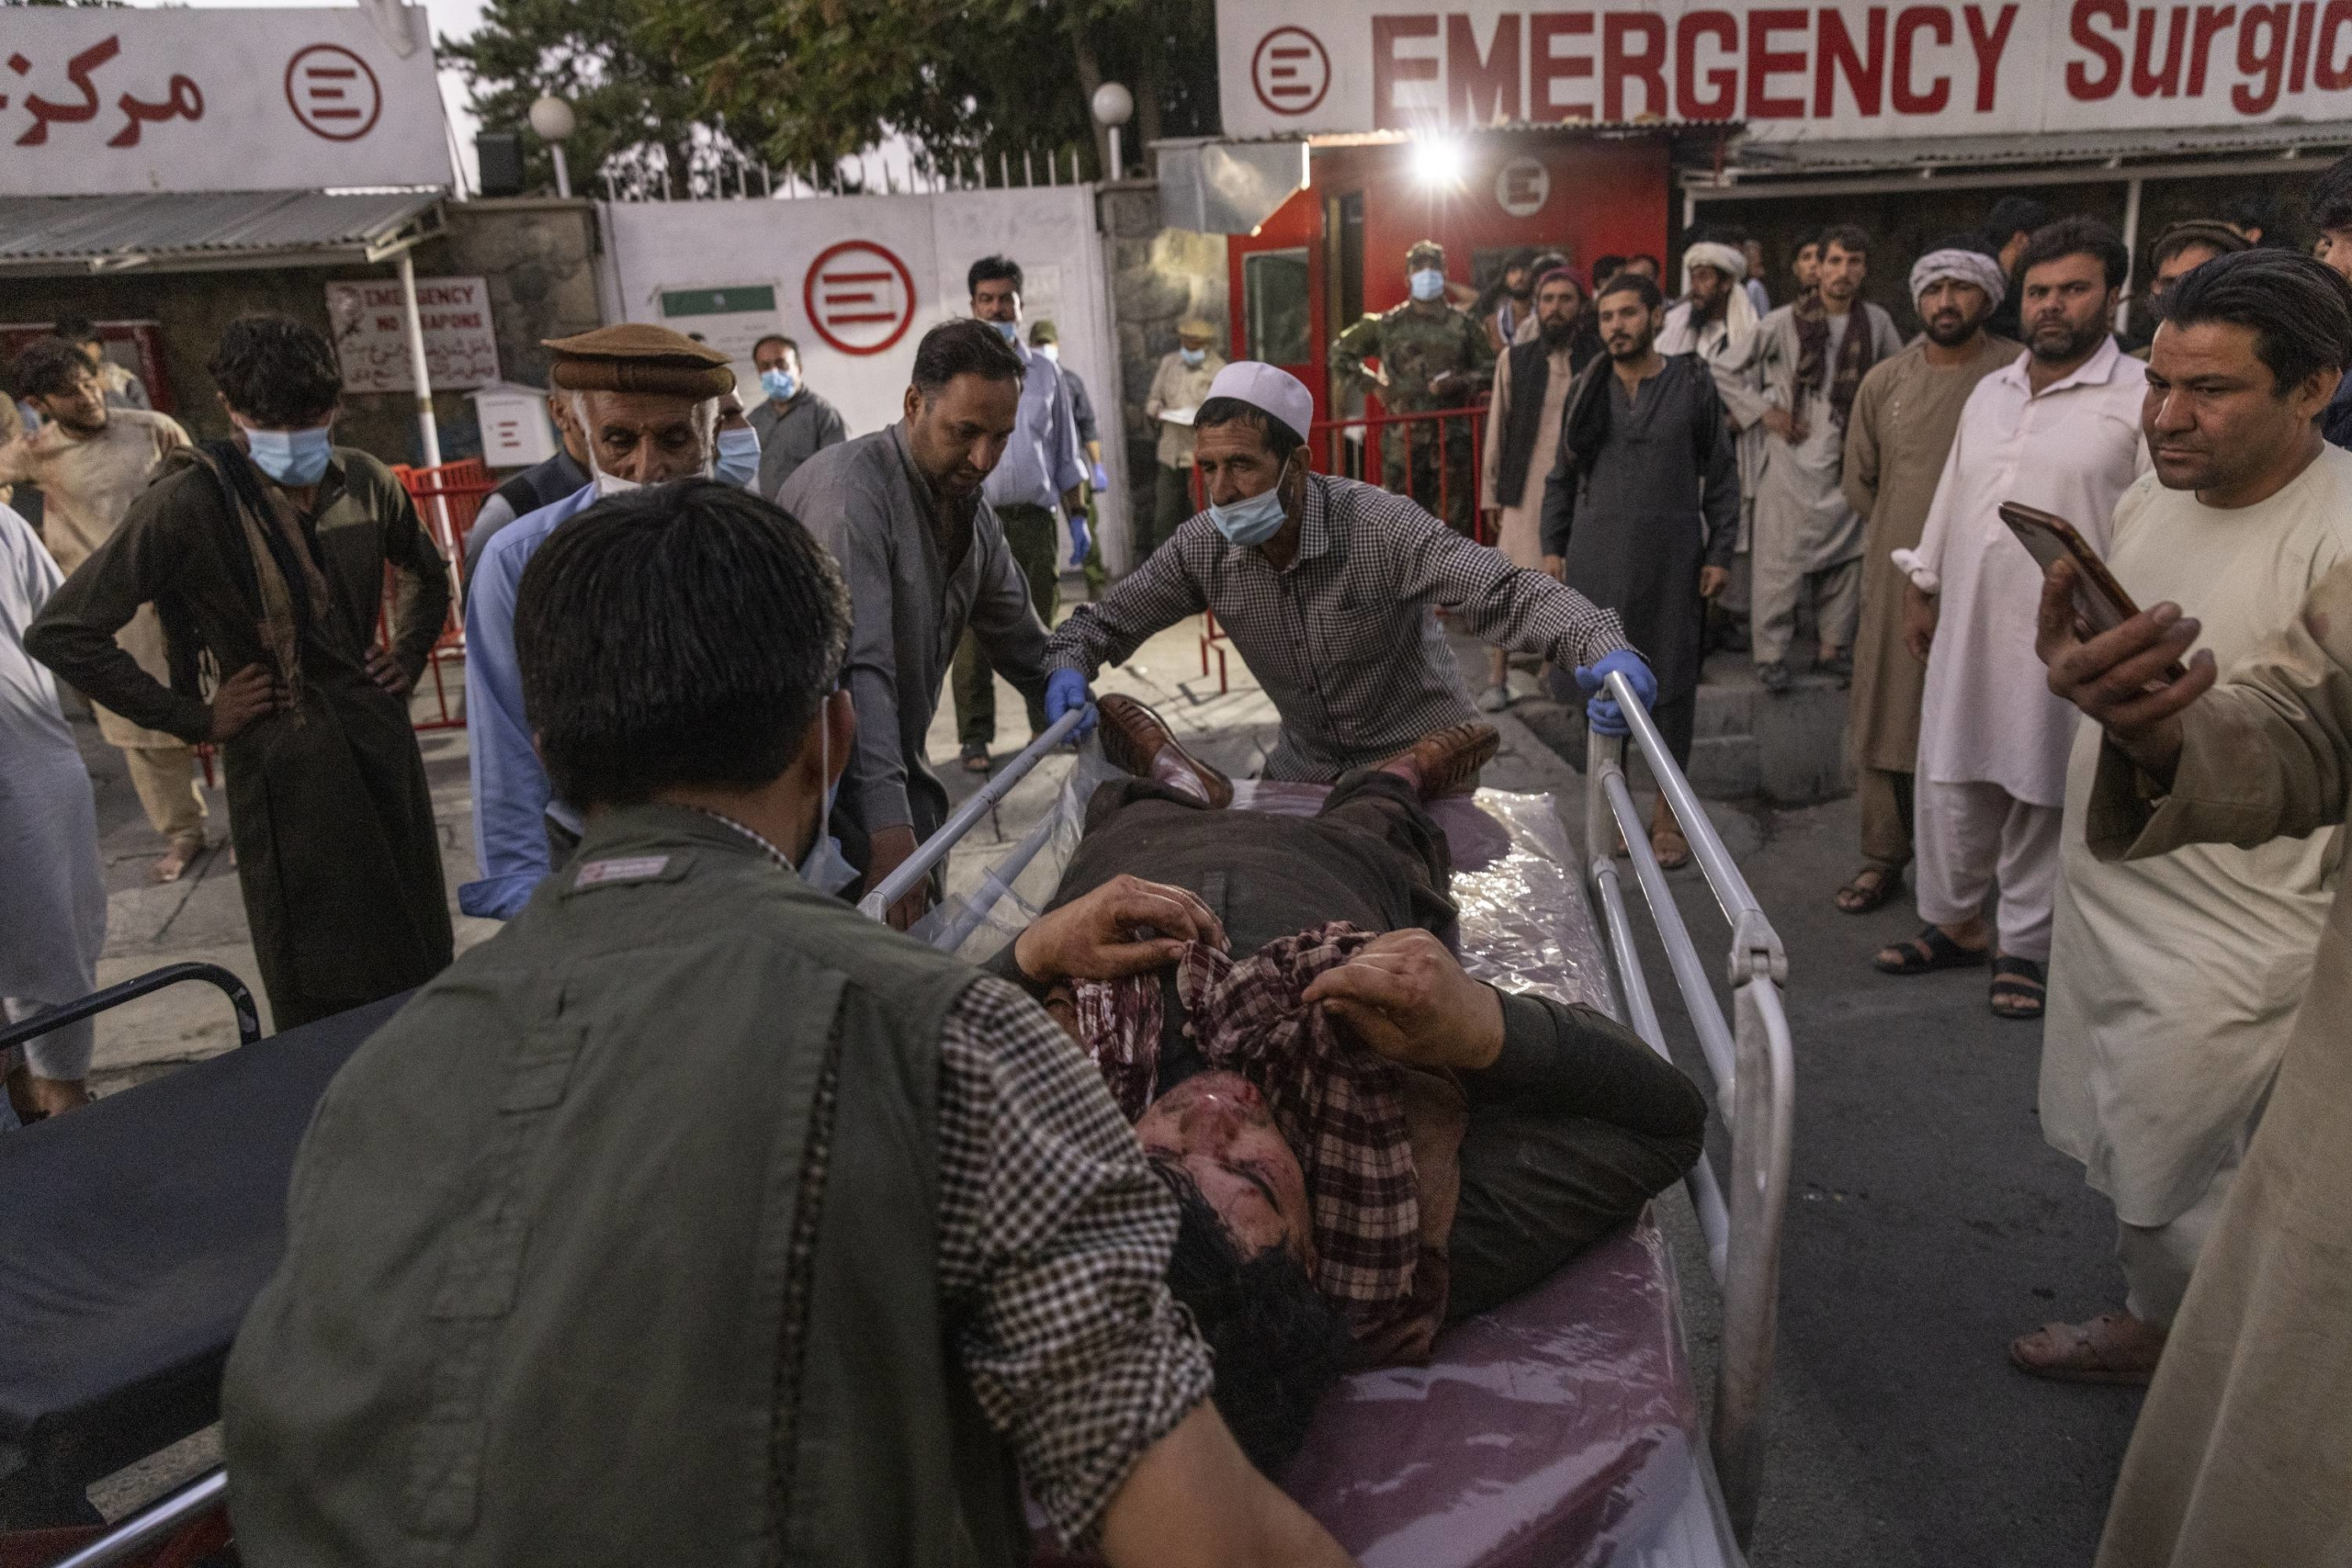 A person wounded in a bomb blast outside Kabul's airport in Afghanistan on Aug. 26 arrives at a hospital. | VICTOR J. BLUE / THE NEW YORK TIMES